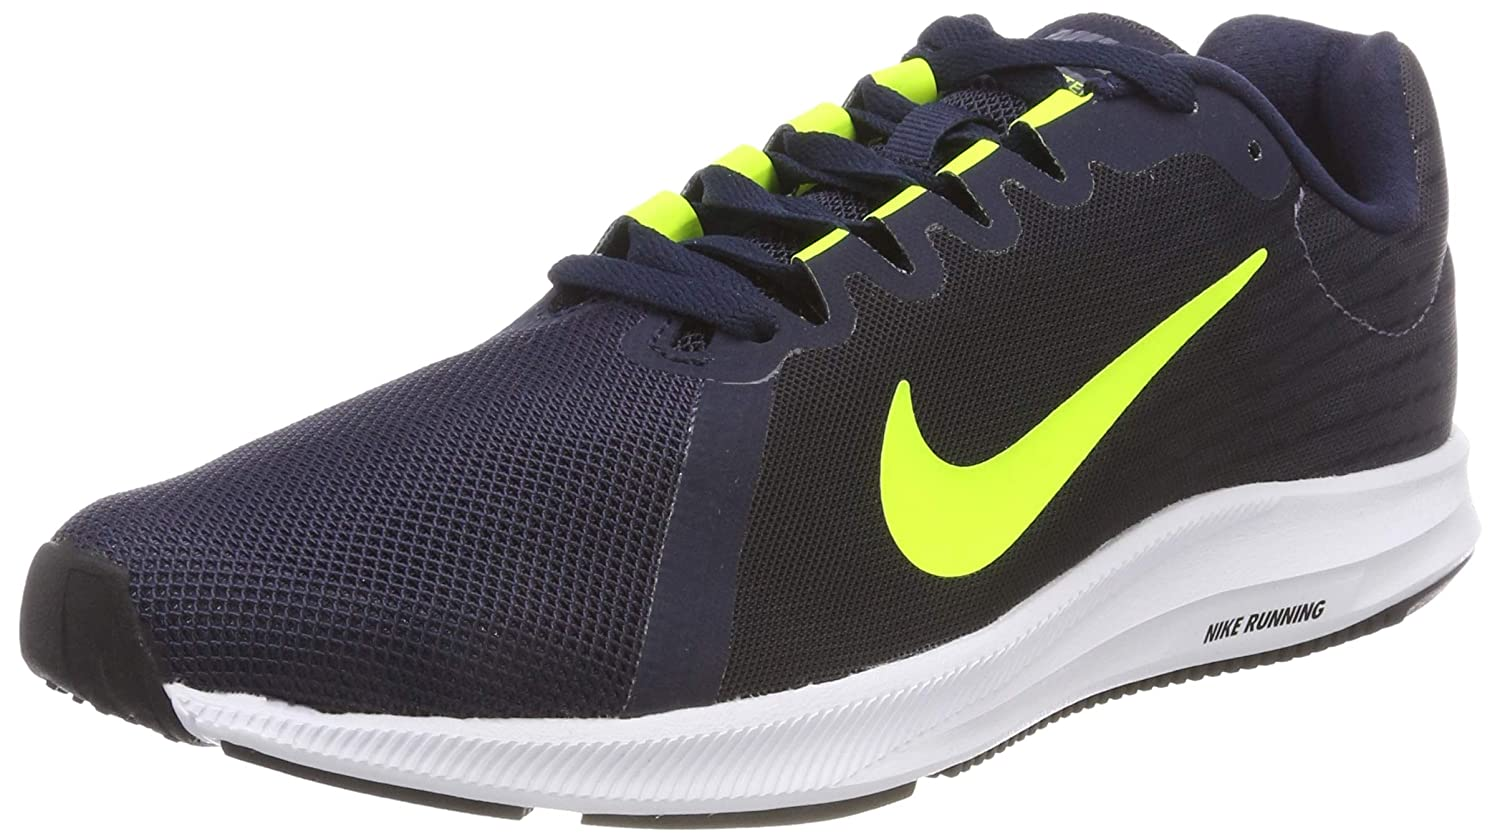 Nike Downshifter 8, Zapatillas de Running para Hombre 38.5 EU|Gris (Light Carbon/Volt-obsidian-black 007)